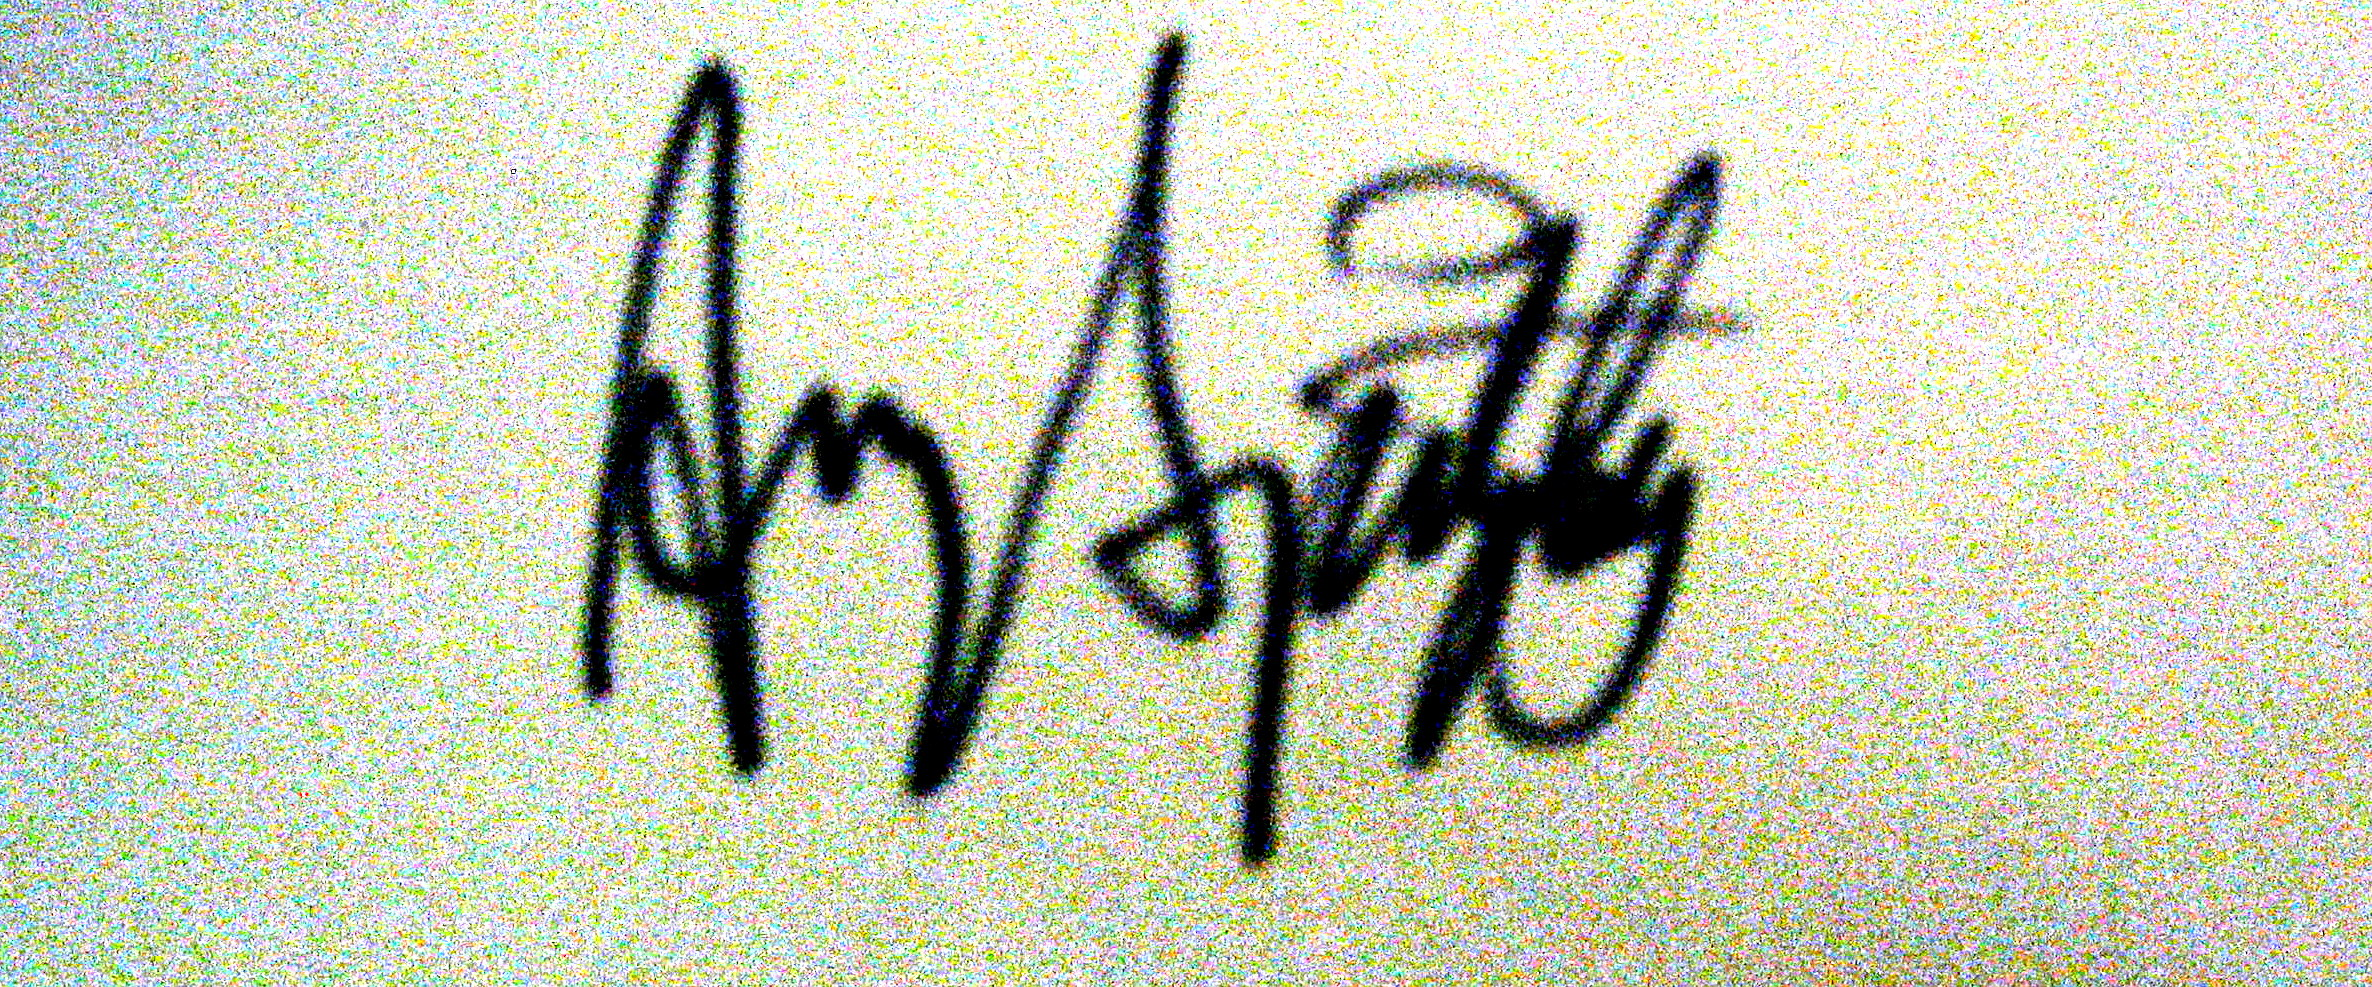 Amy Spitzley's Signature